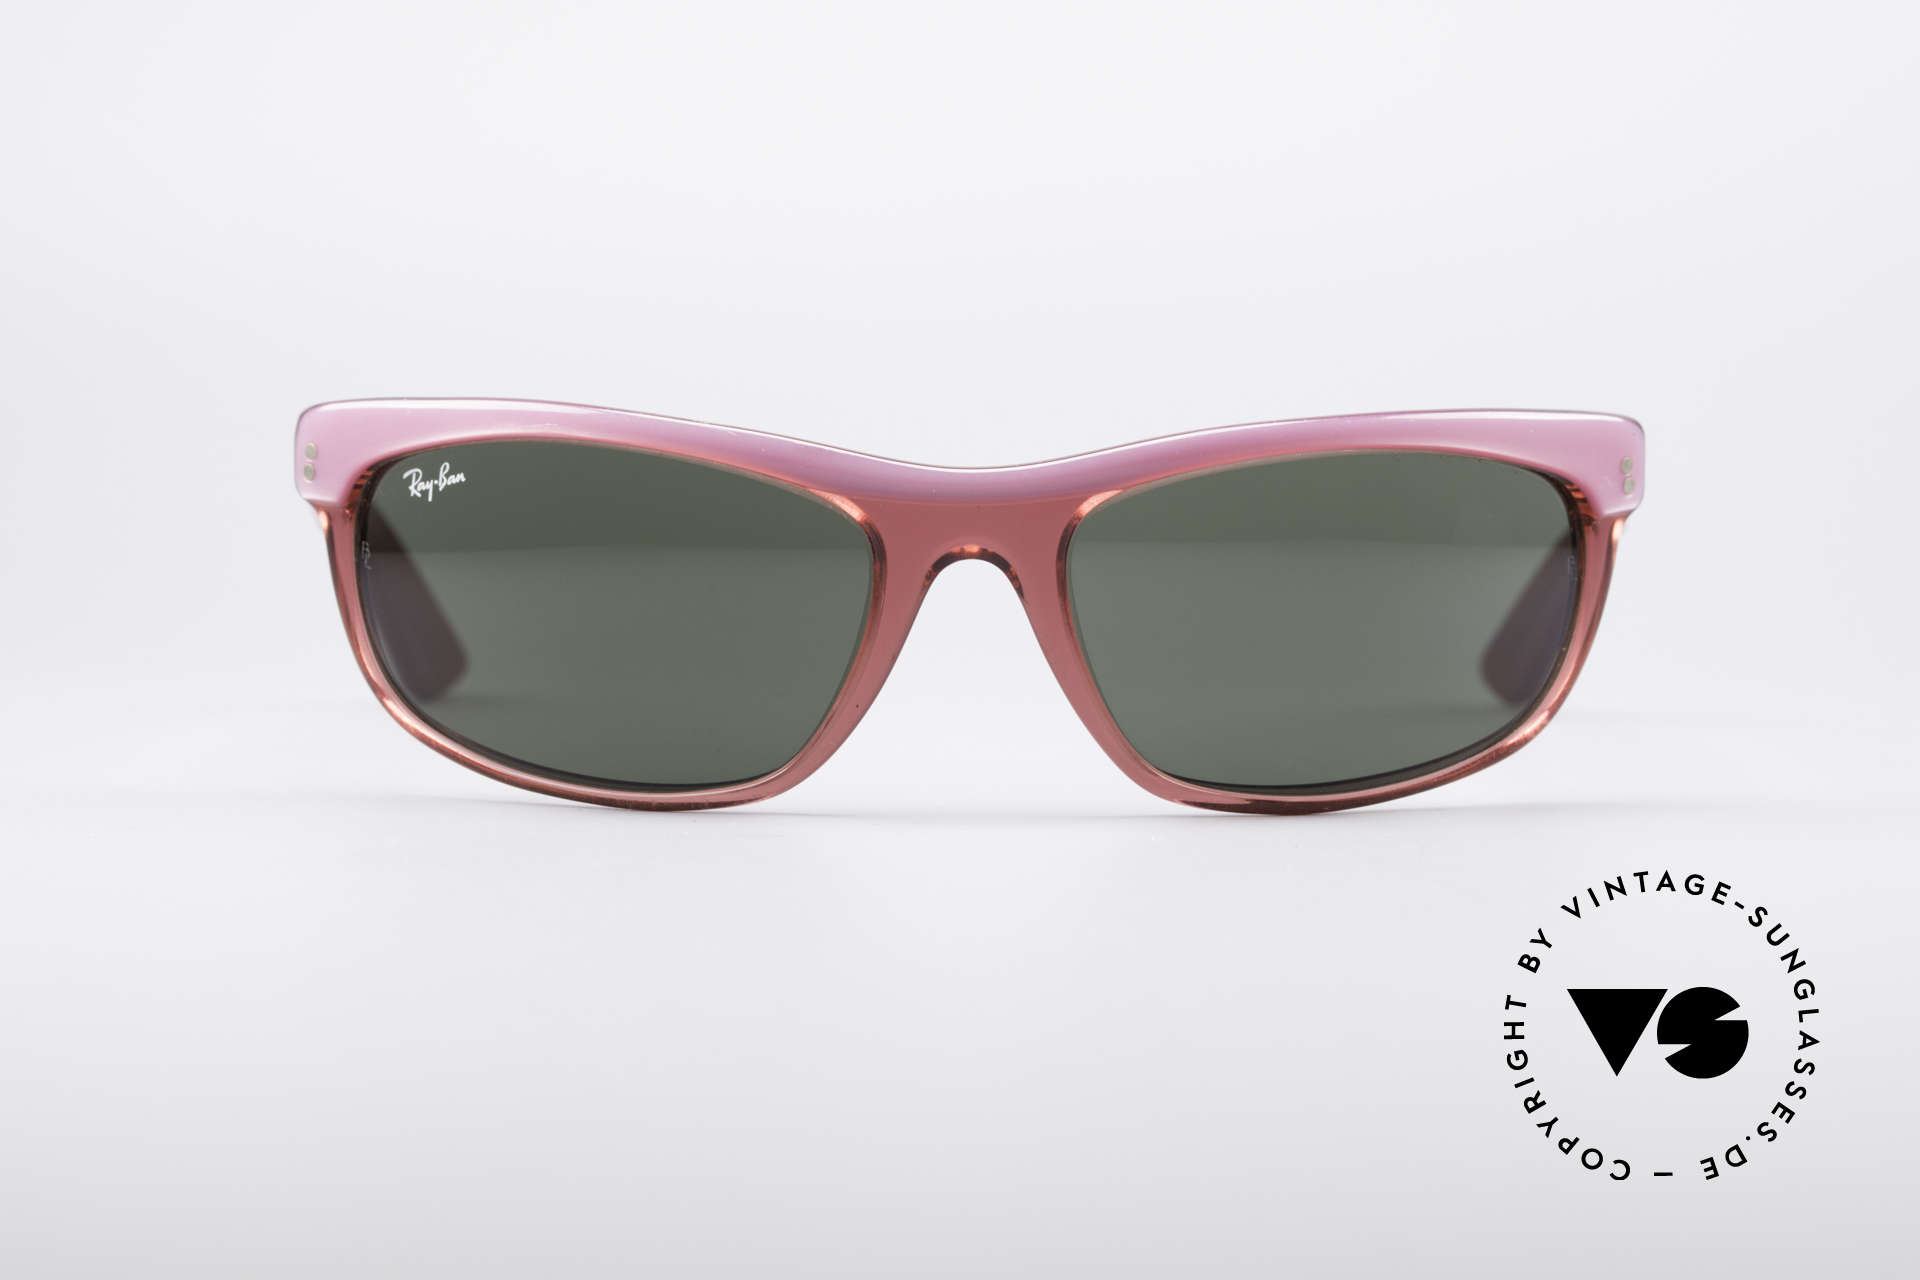 0c15d93ca4c88 Sunglasses Ray Ban Balorama Clint Eastwood Shades